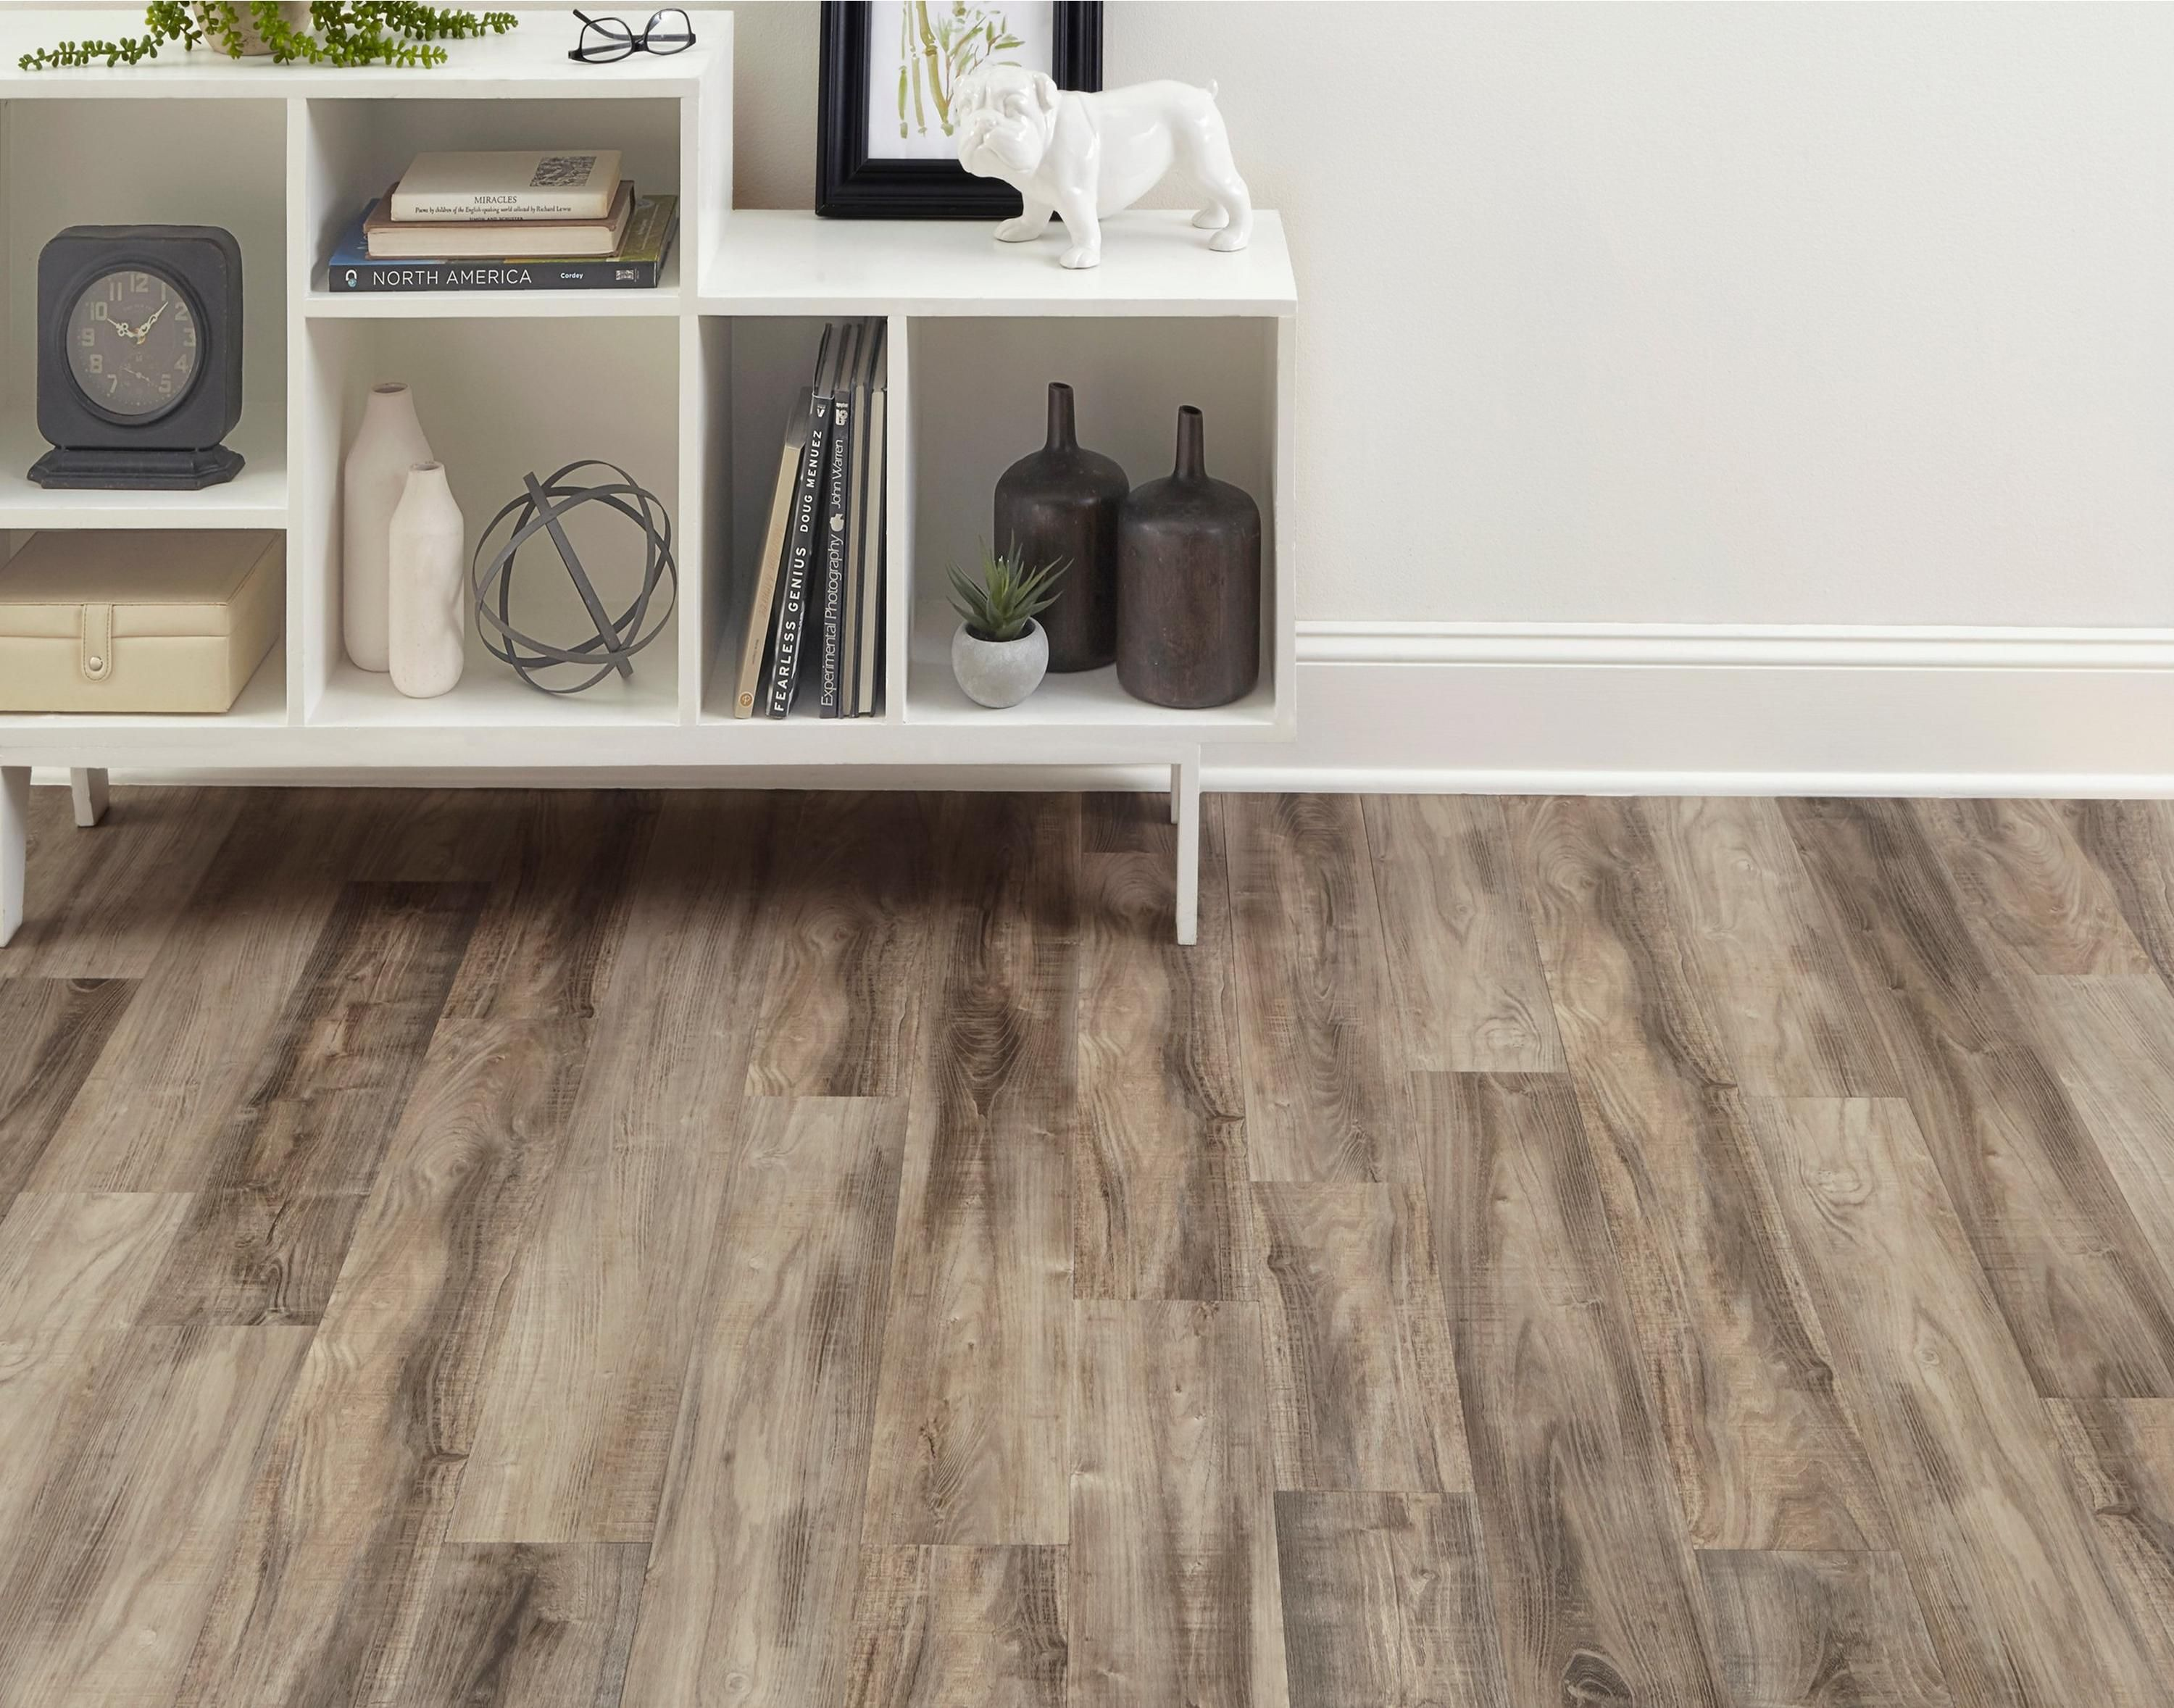 Ombre Gray Rigid Core Luxury Vinyl Plank Cork Back Vinyl Plank Luxury Vinyl Plank Luxury Vinyl Plank Flooring